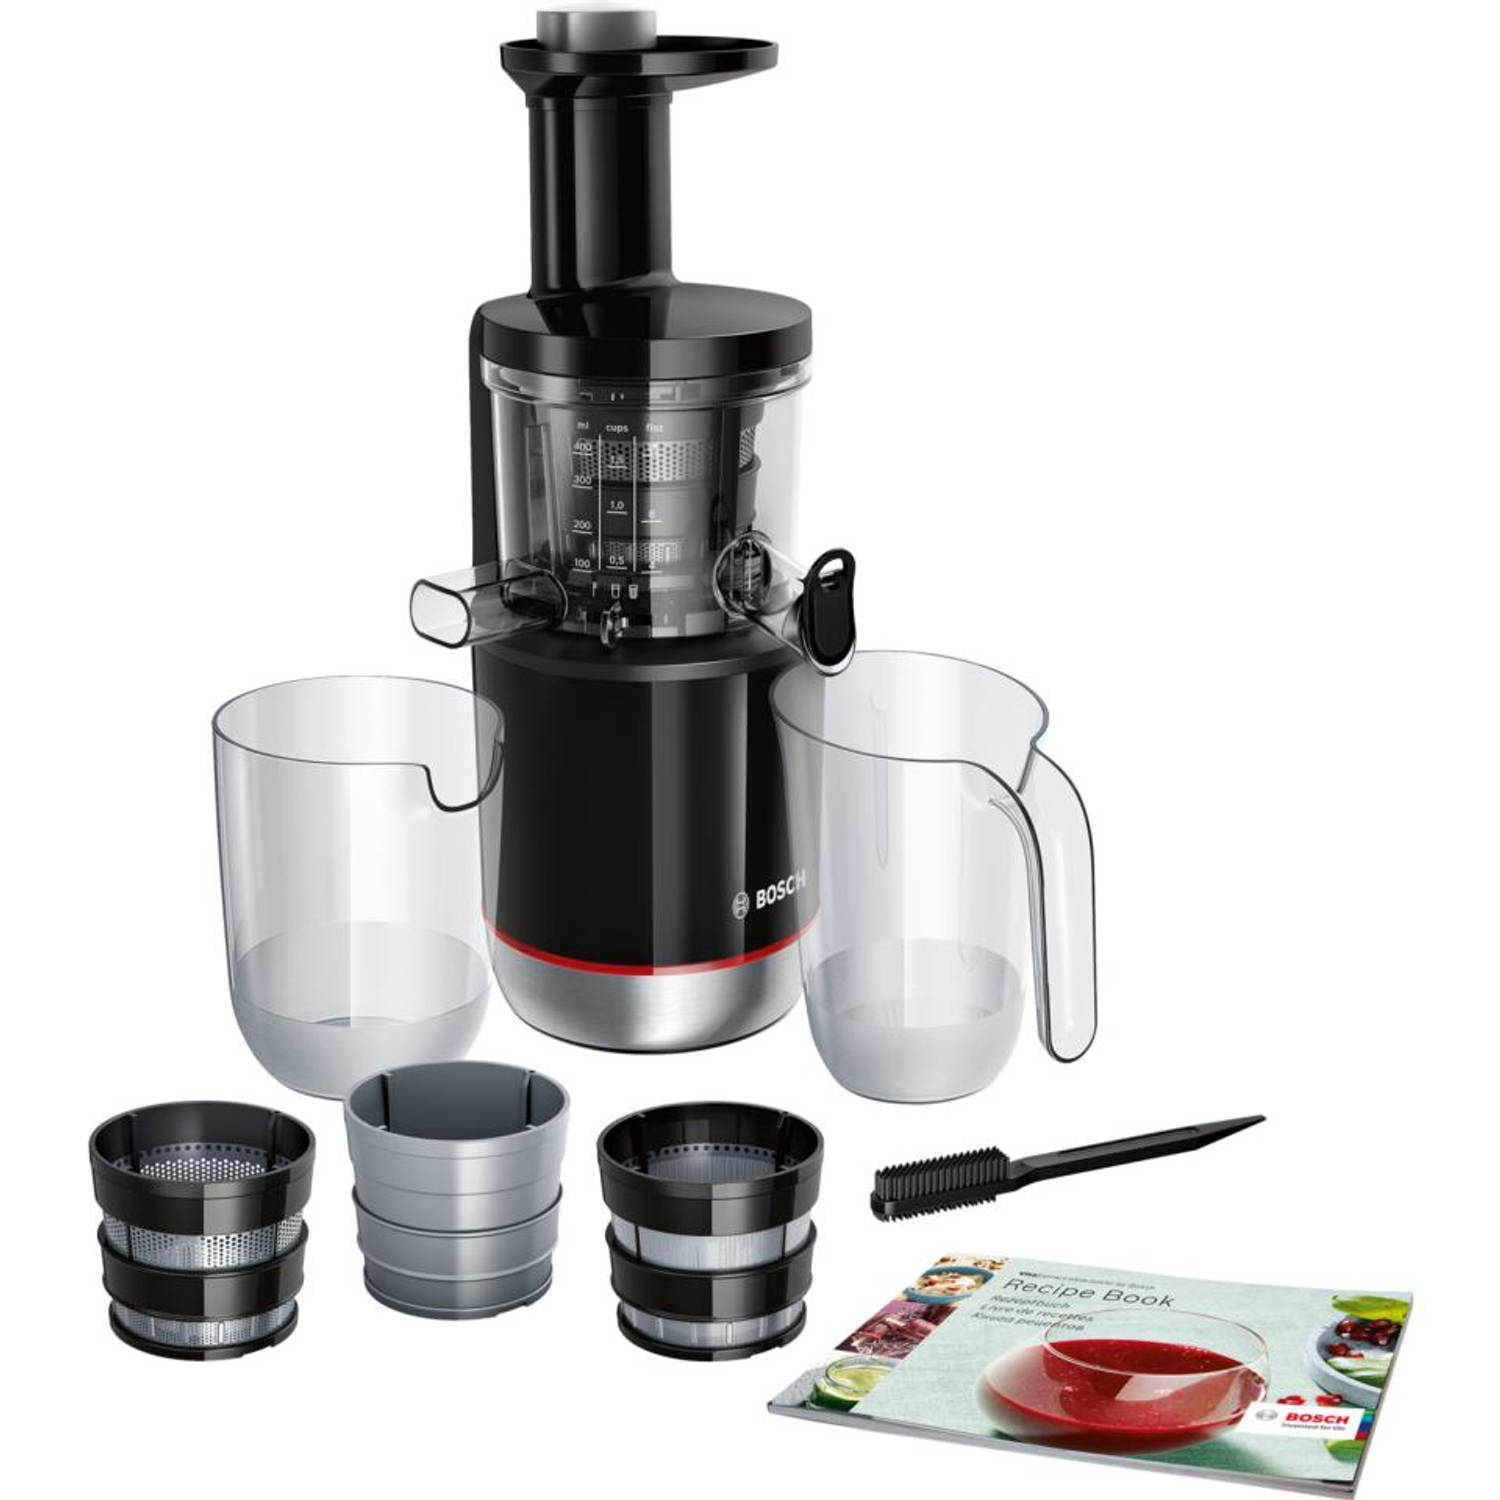 Bosch vita extract slowjuicer MESM731M